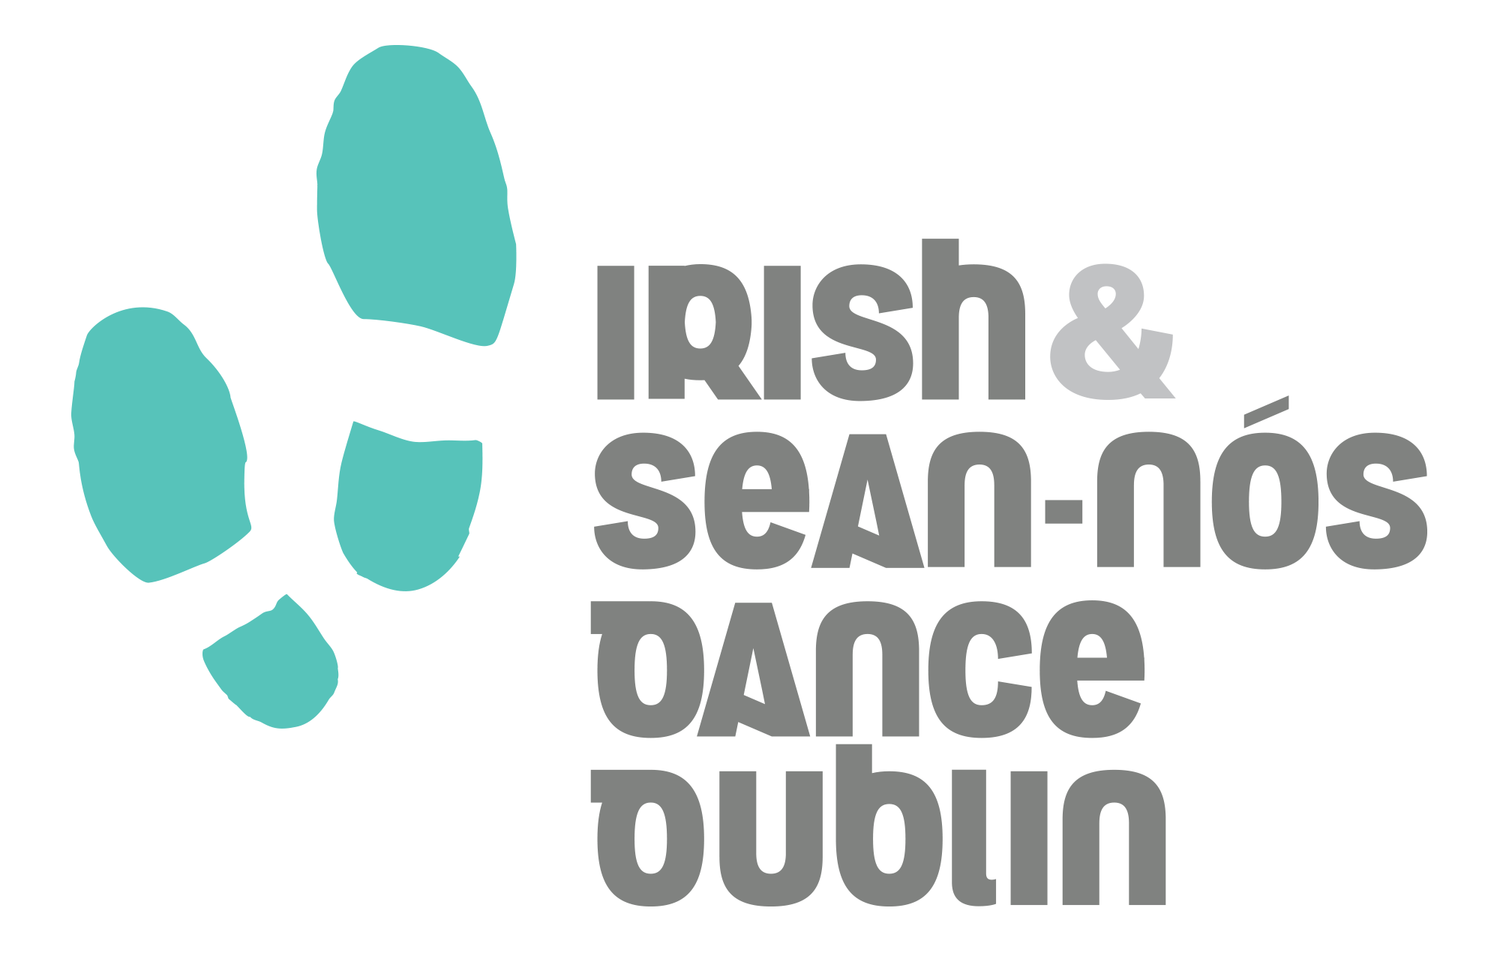 Irish & Sean-Nós Dance Dublin